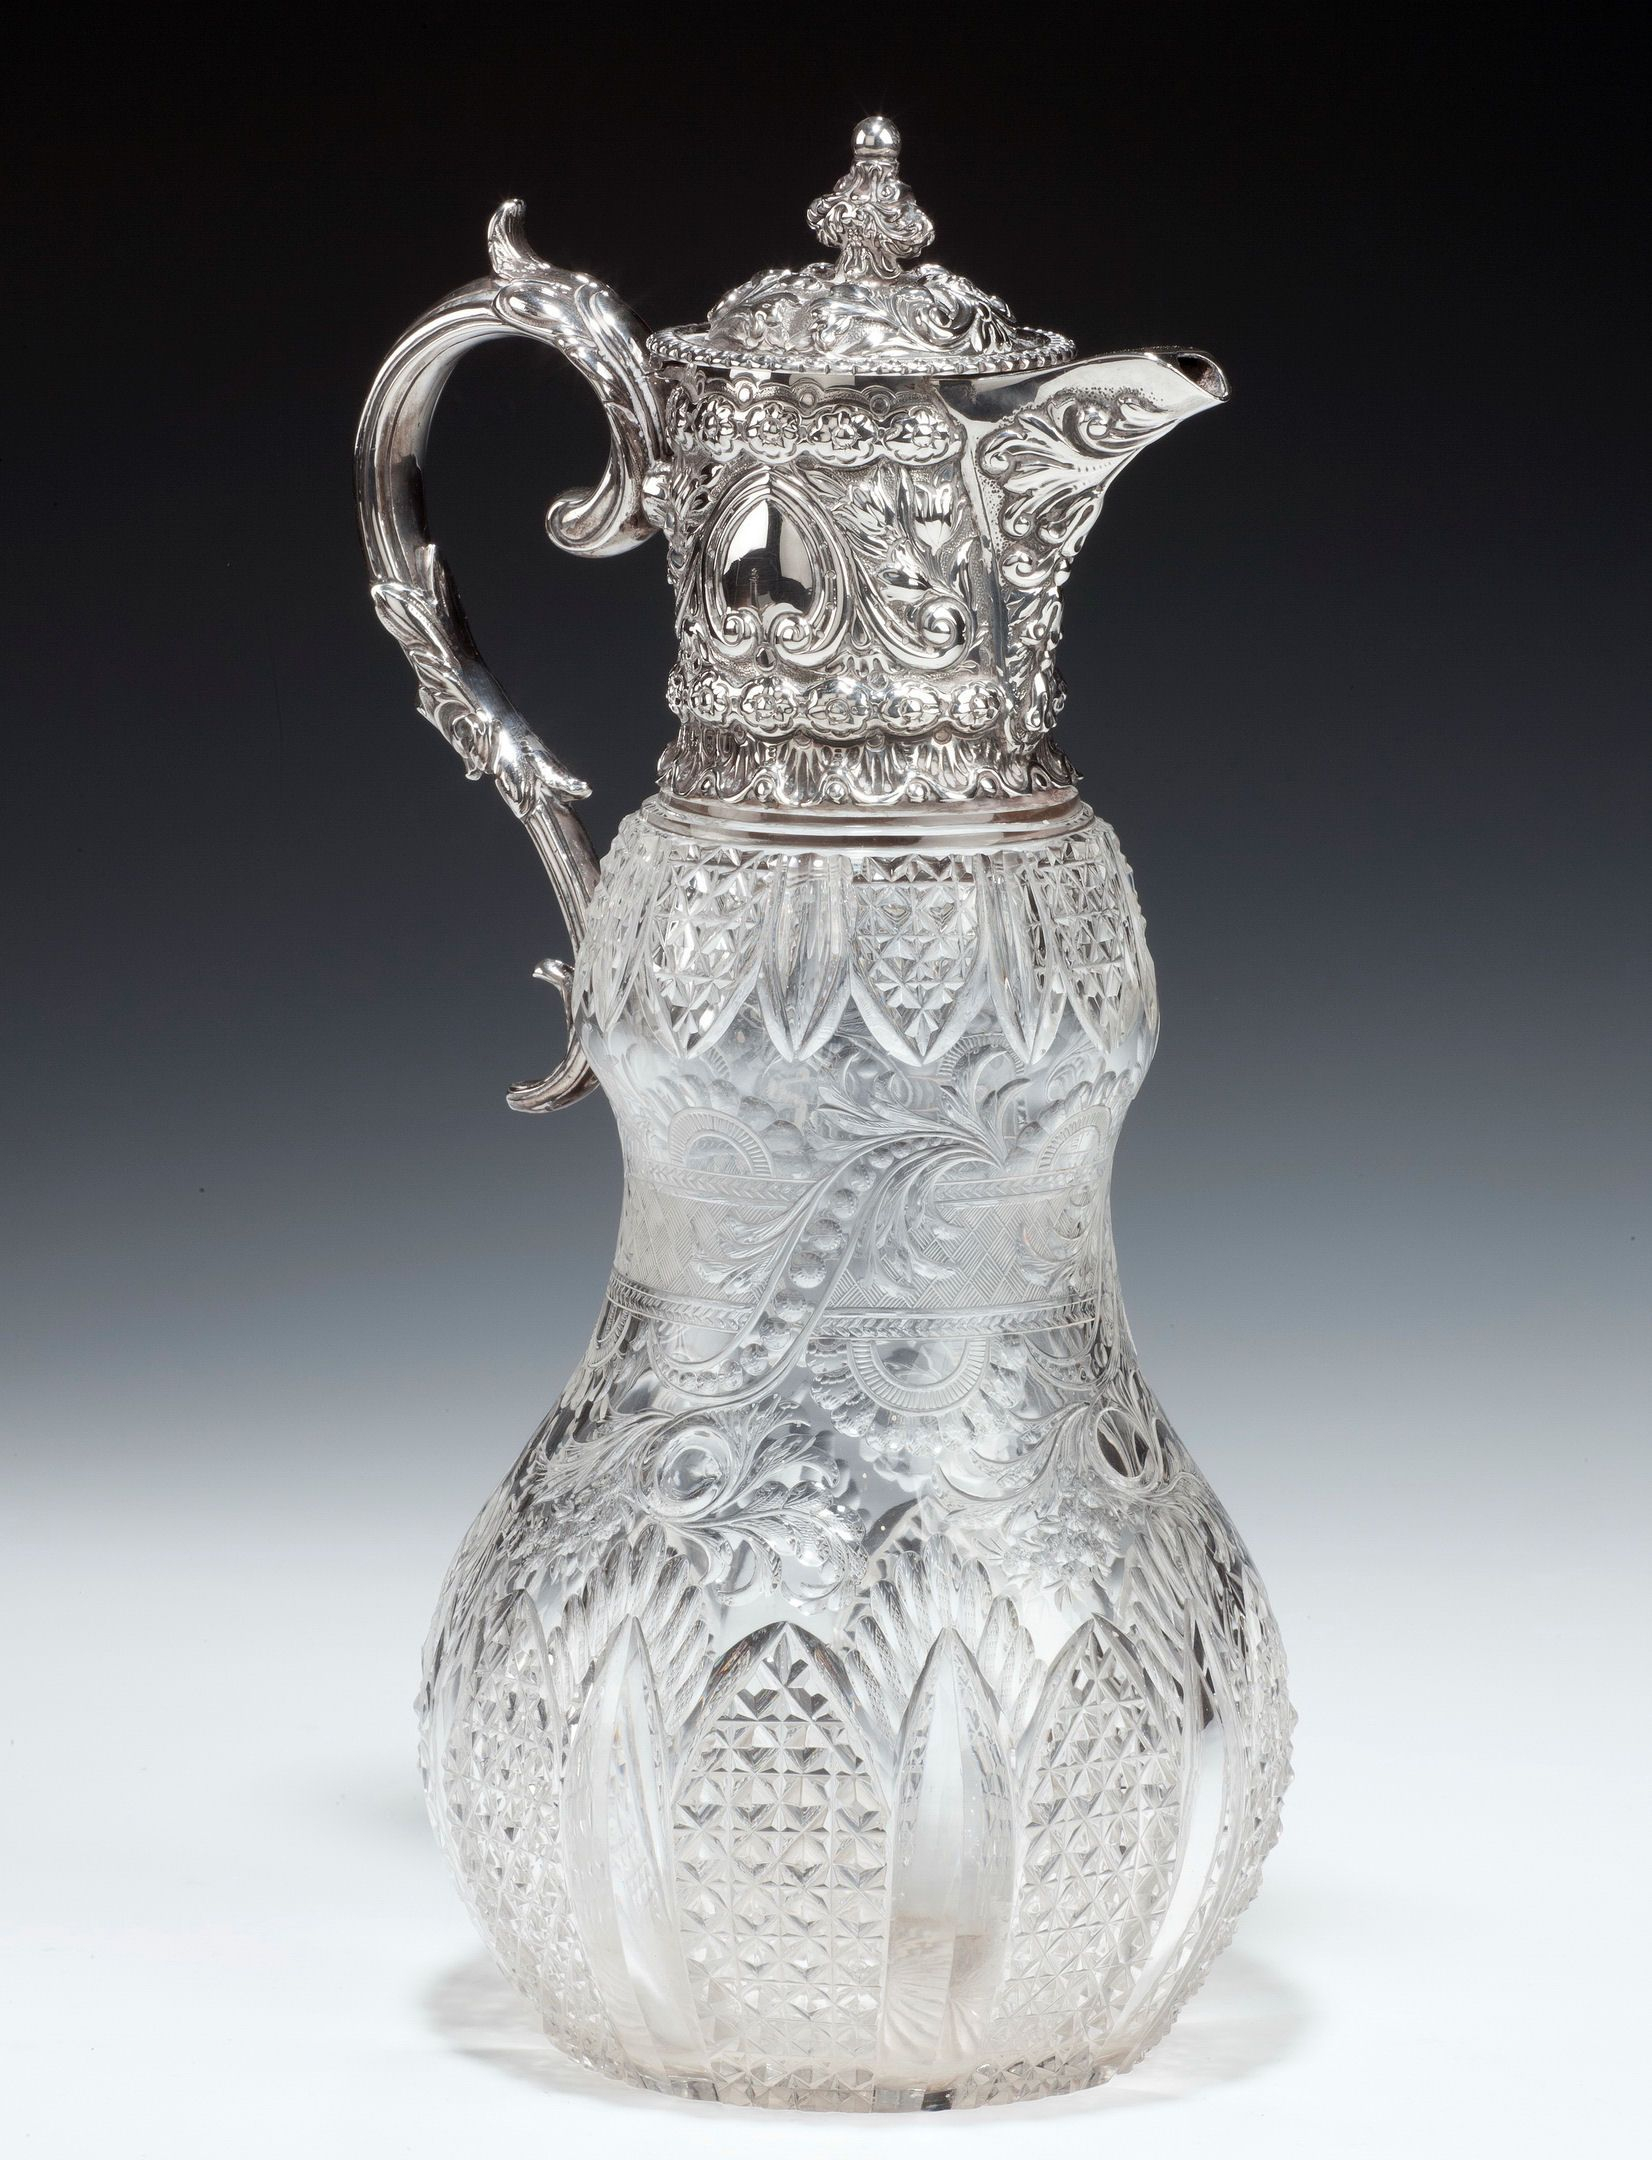 A wonderful silver claret jug, the gourd shaped body is beautifully cut and was probably made by Stevens & Williams, Stourbridge, with an ornate silver mount and handle by William Hutton & Sons Ltd.